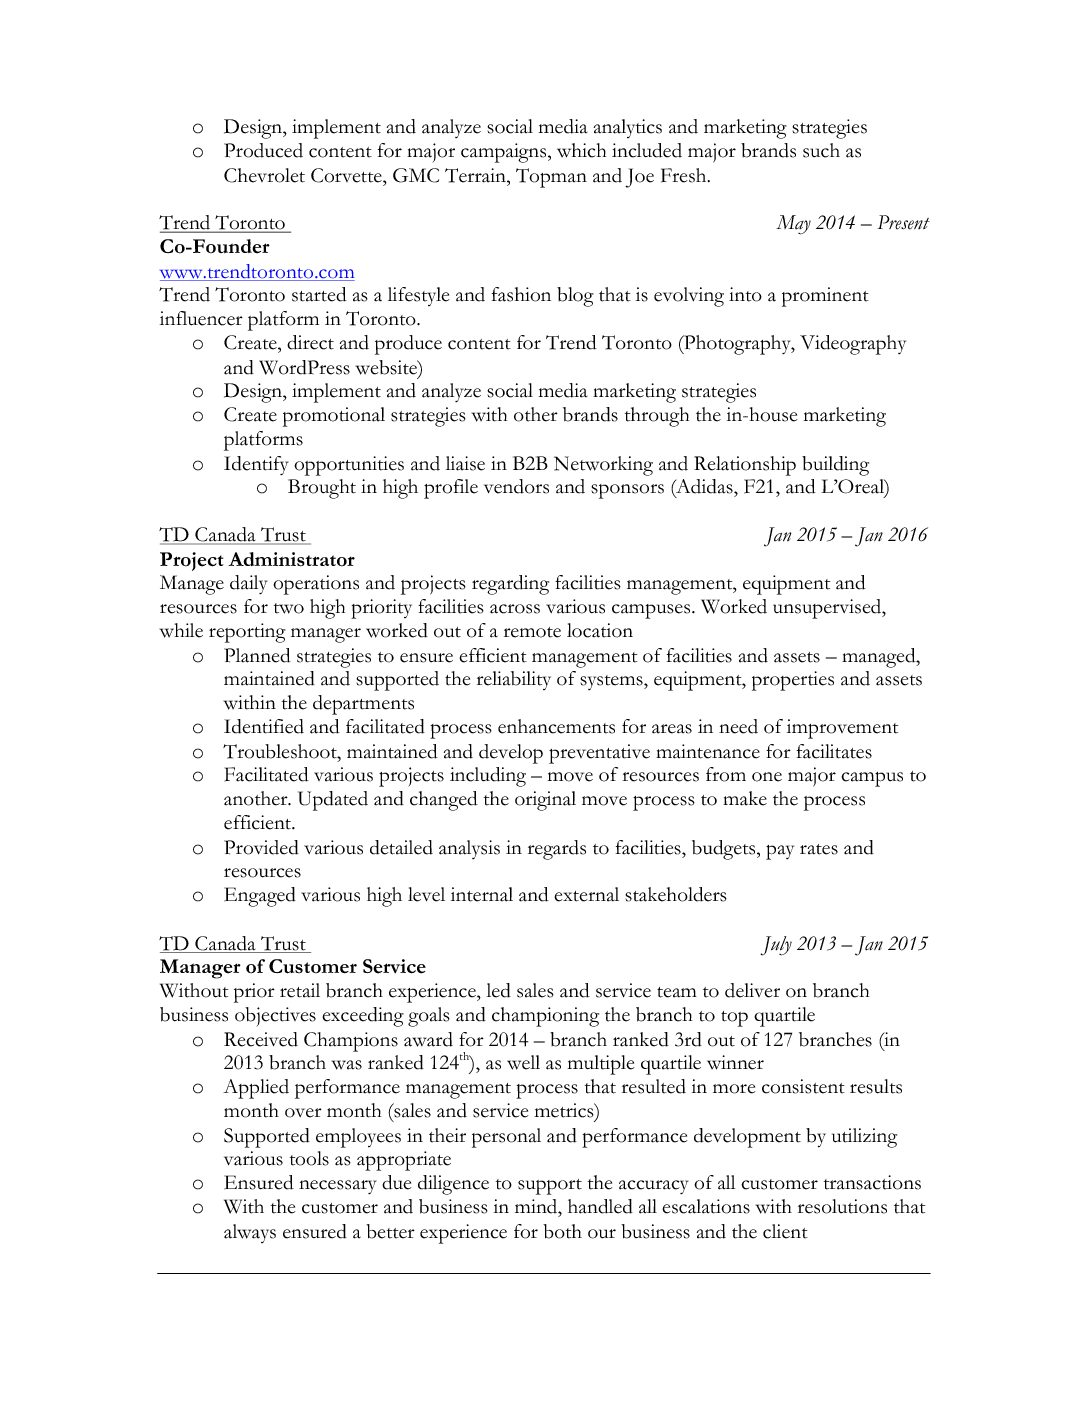 2 Pages from Vith Logan - Resume 2017